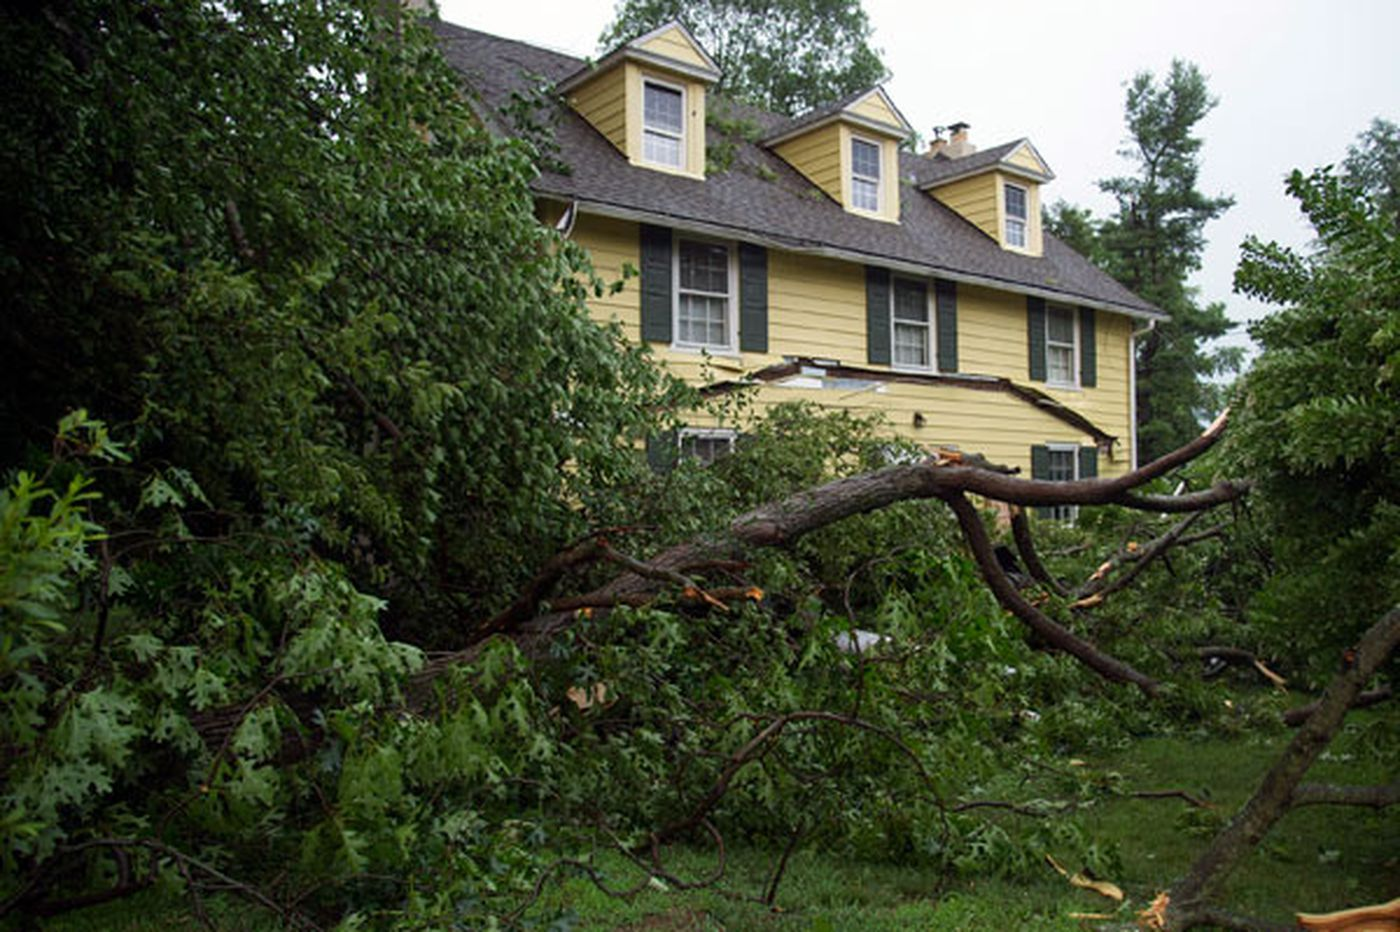 2 tornadoes confirmed in Pennsylvania; some damage reported